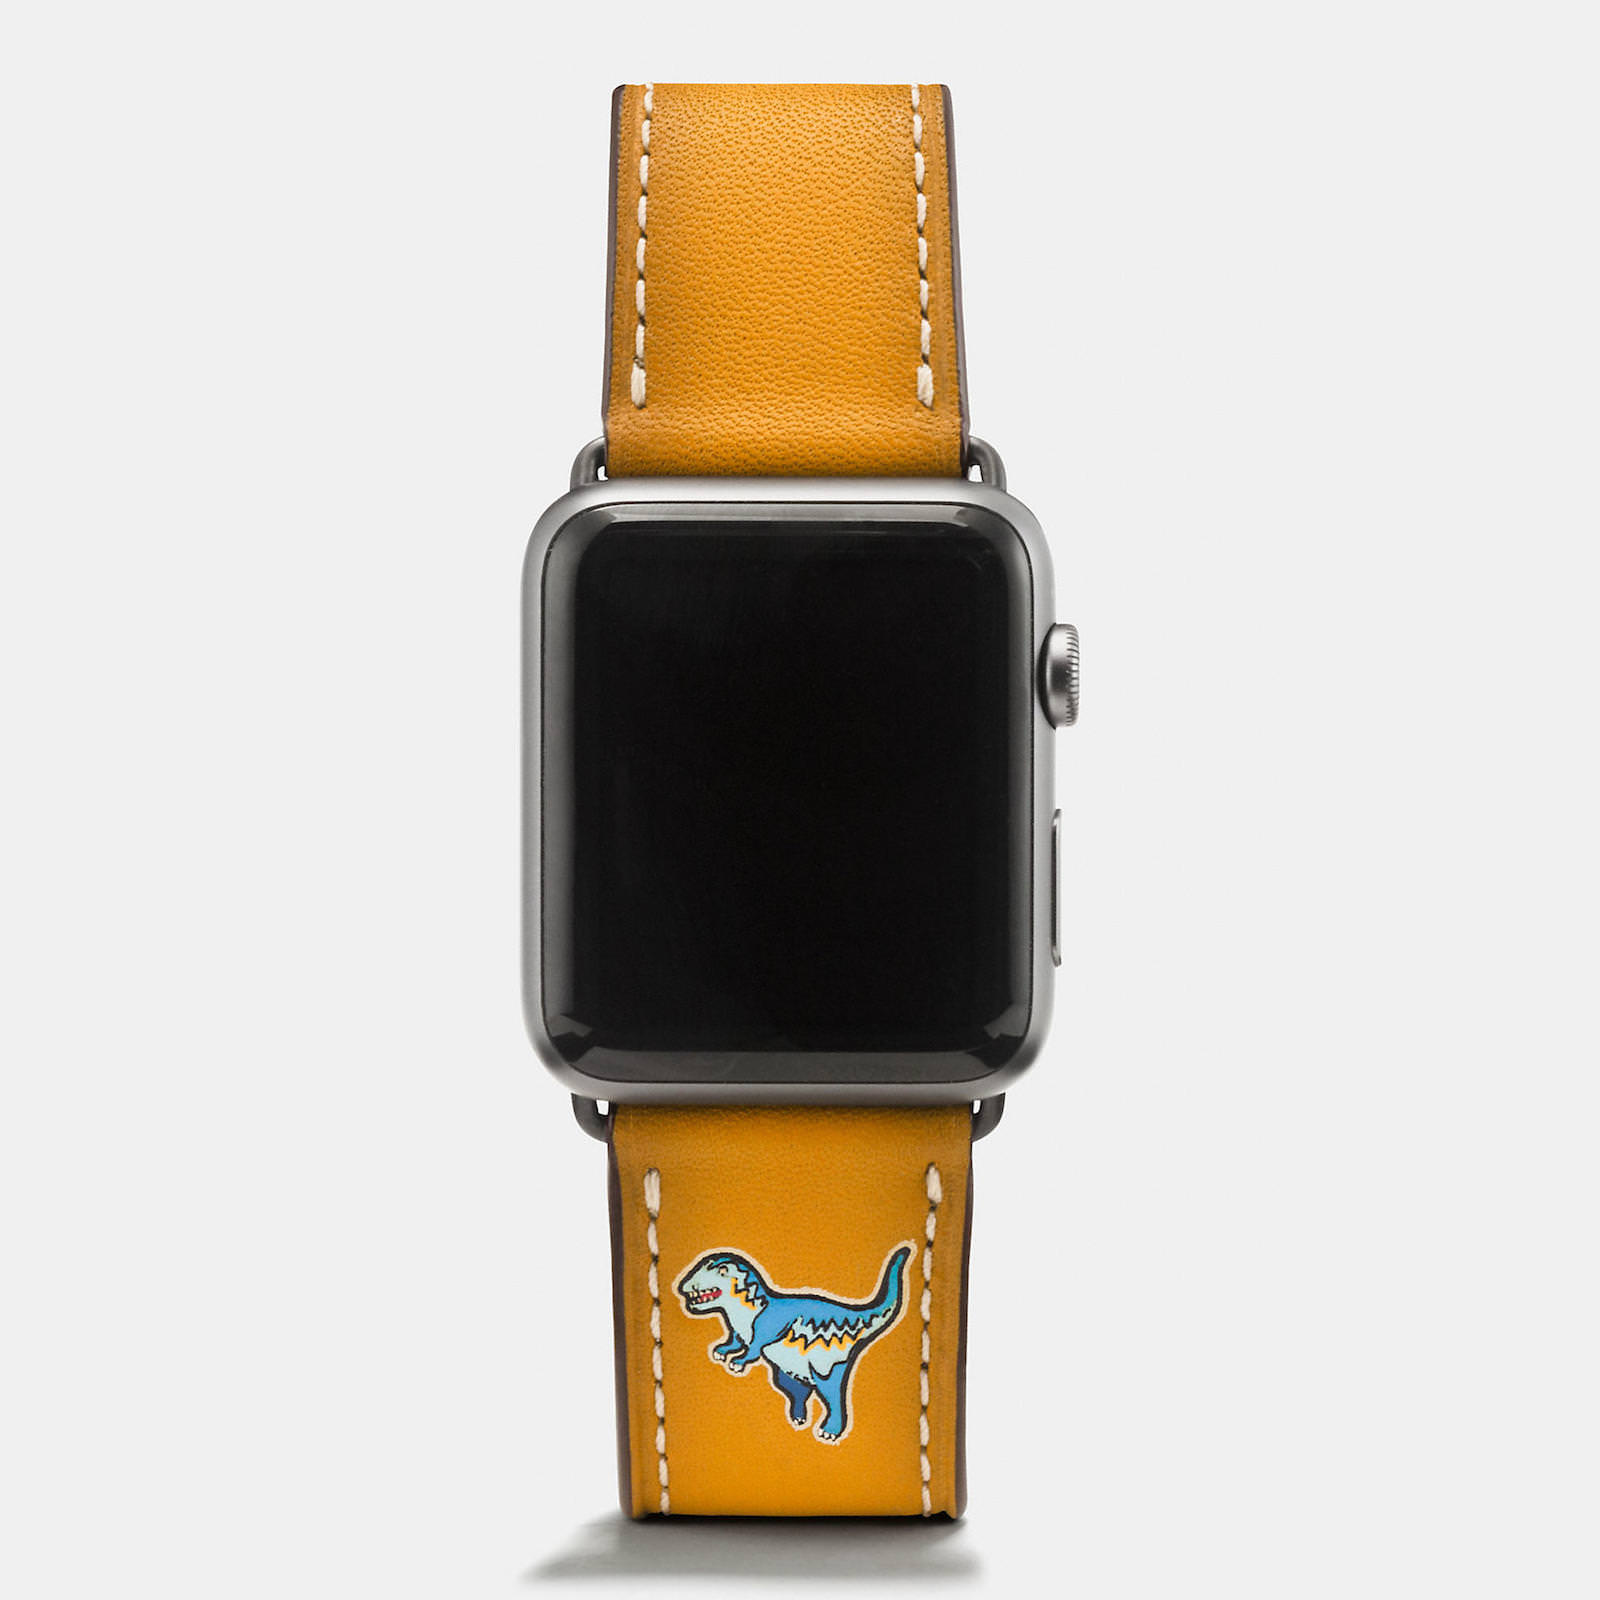 Apple-Watch-Coach-Band-Autumn-Season-3.jpeg